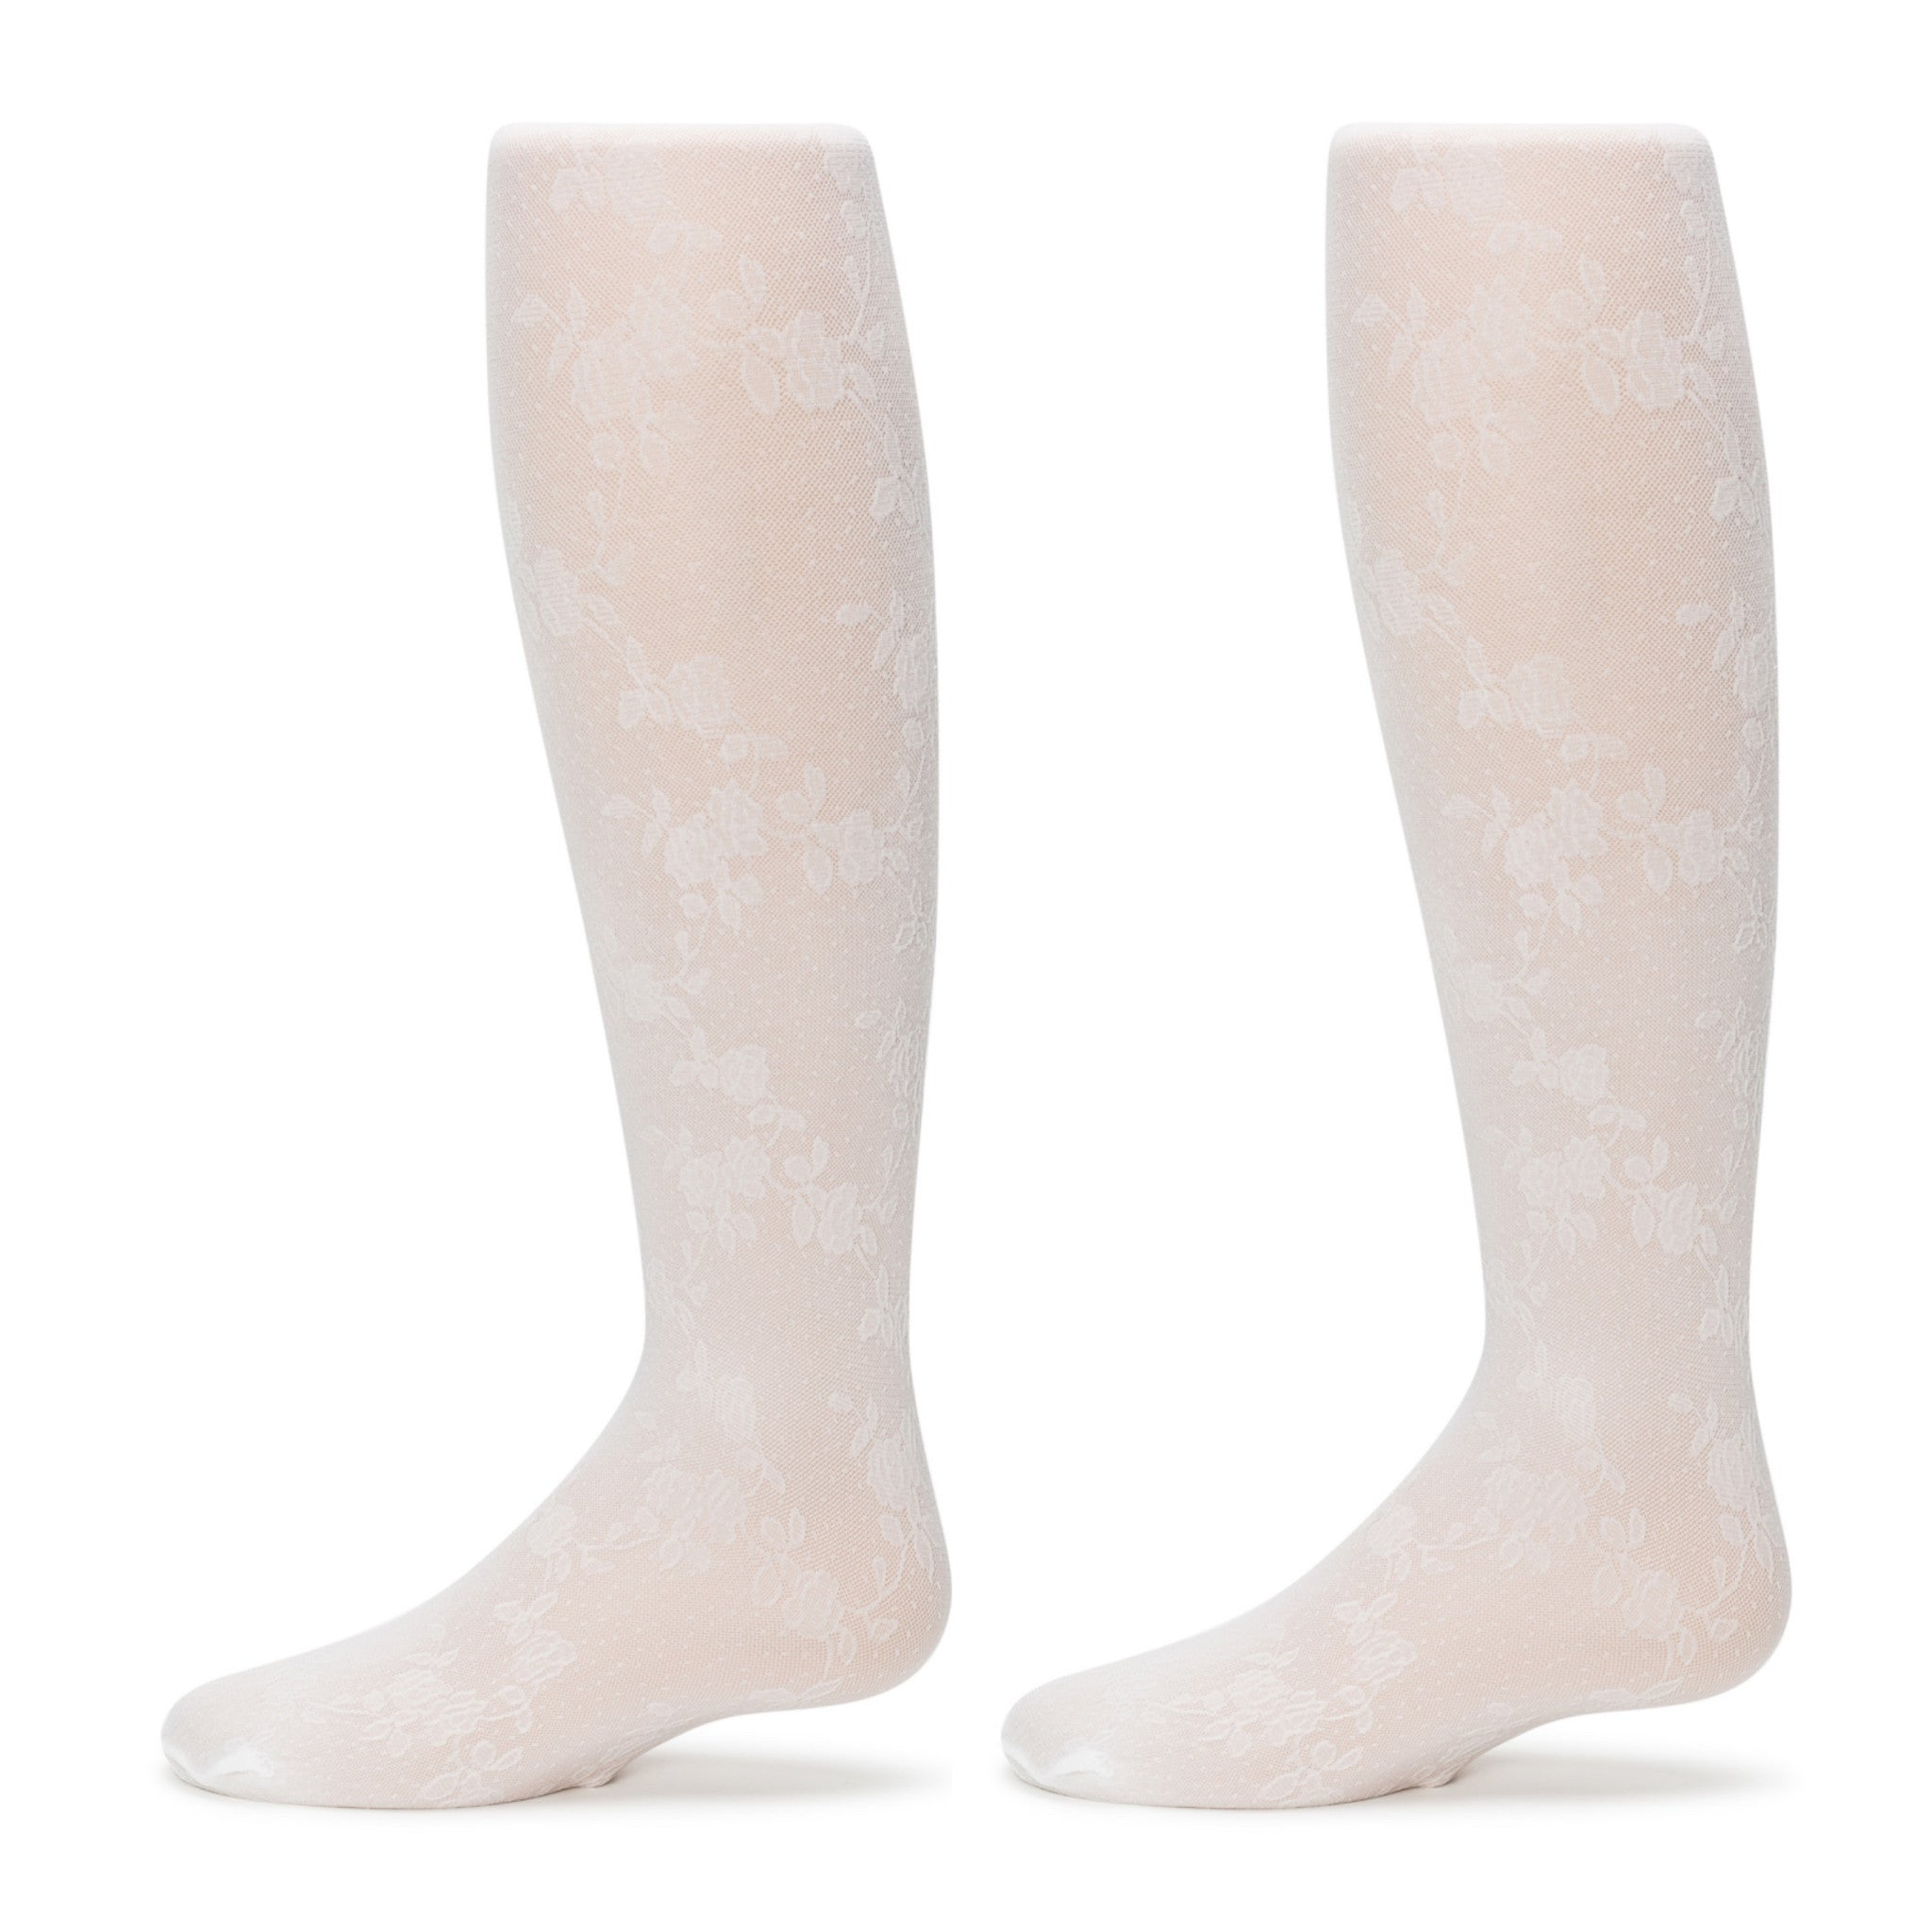 4-Pack Floral Vine Tights (White)